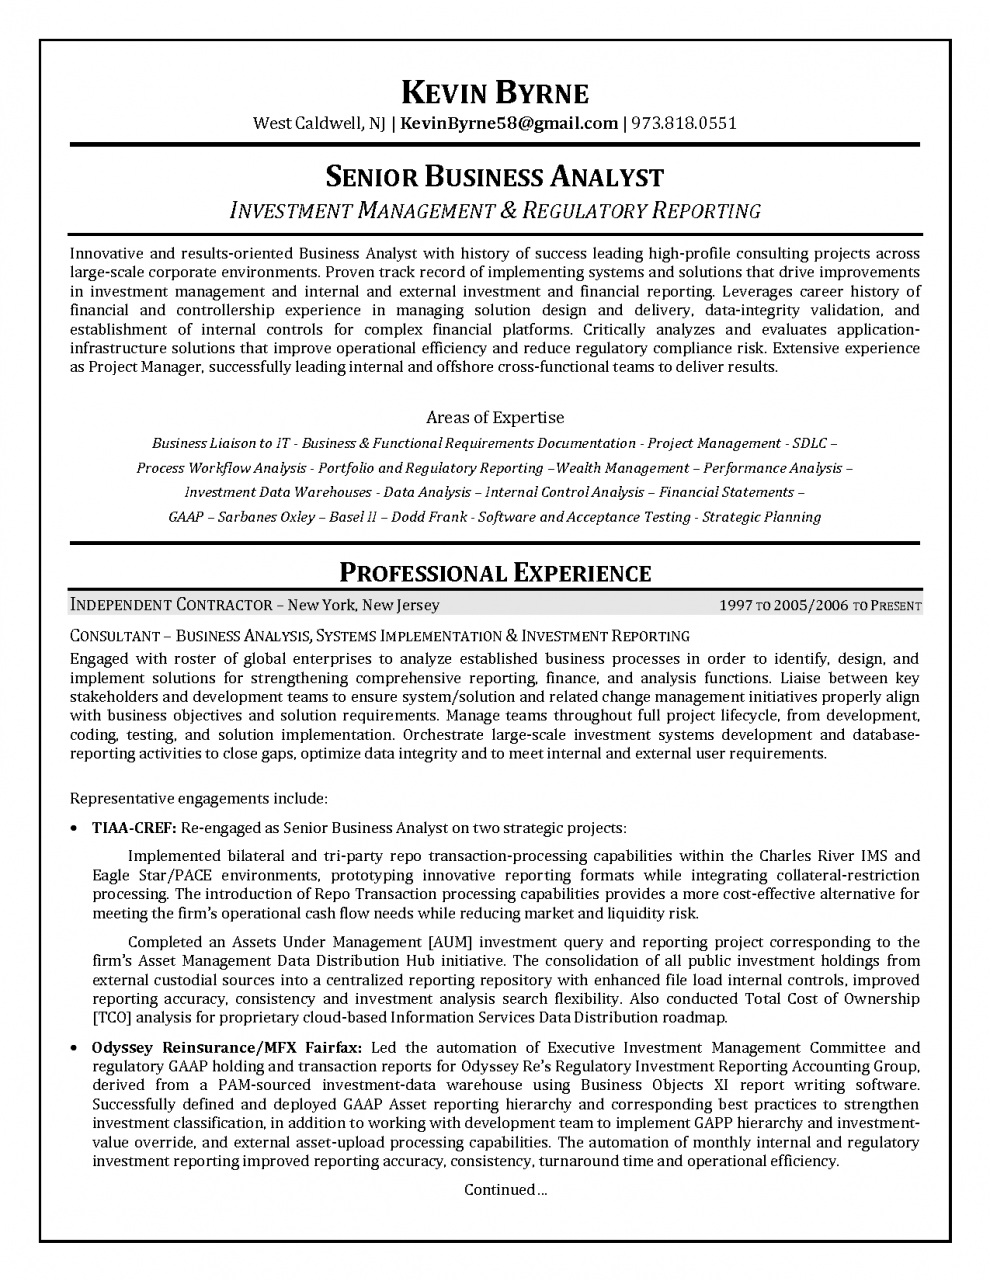 Resume Senior Business Analyst Resume Format Business Analyst